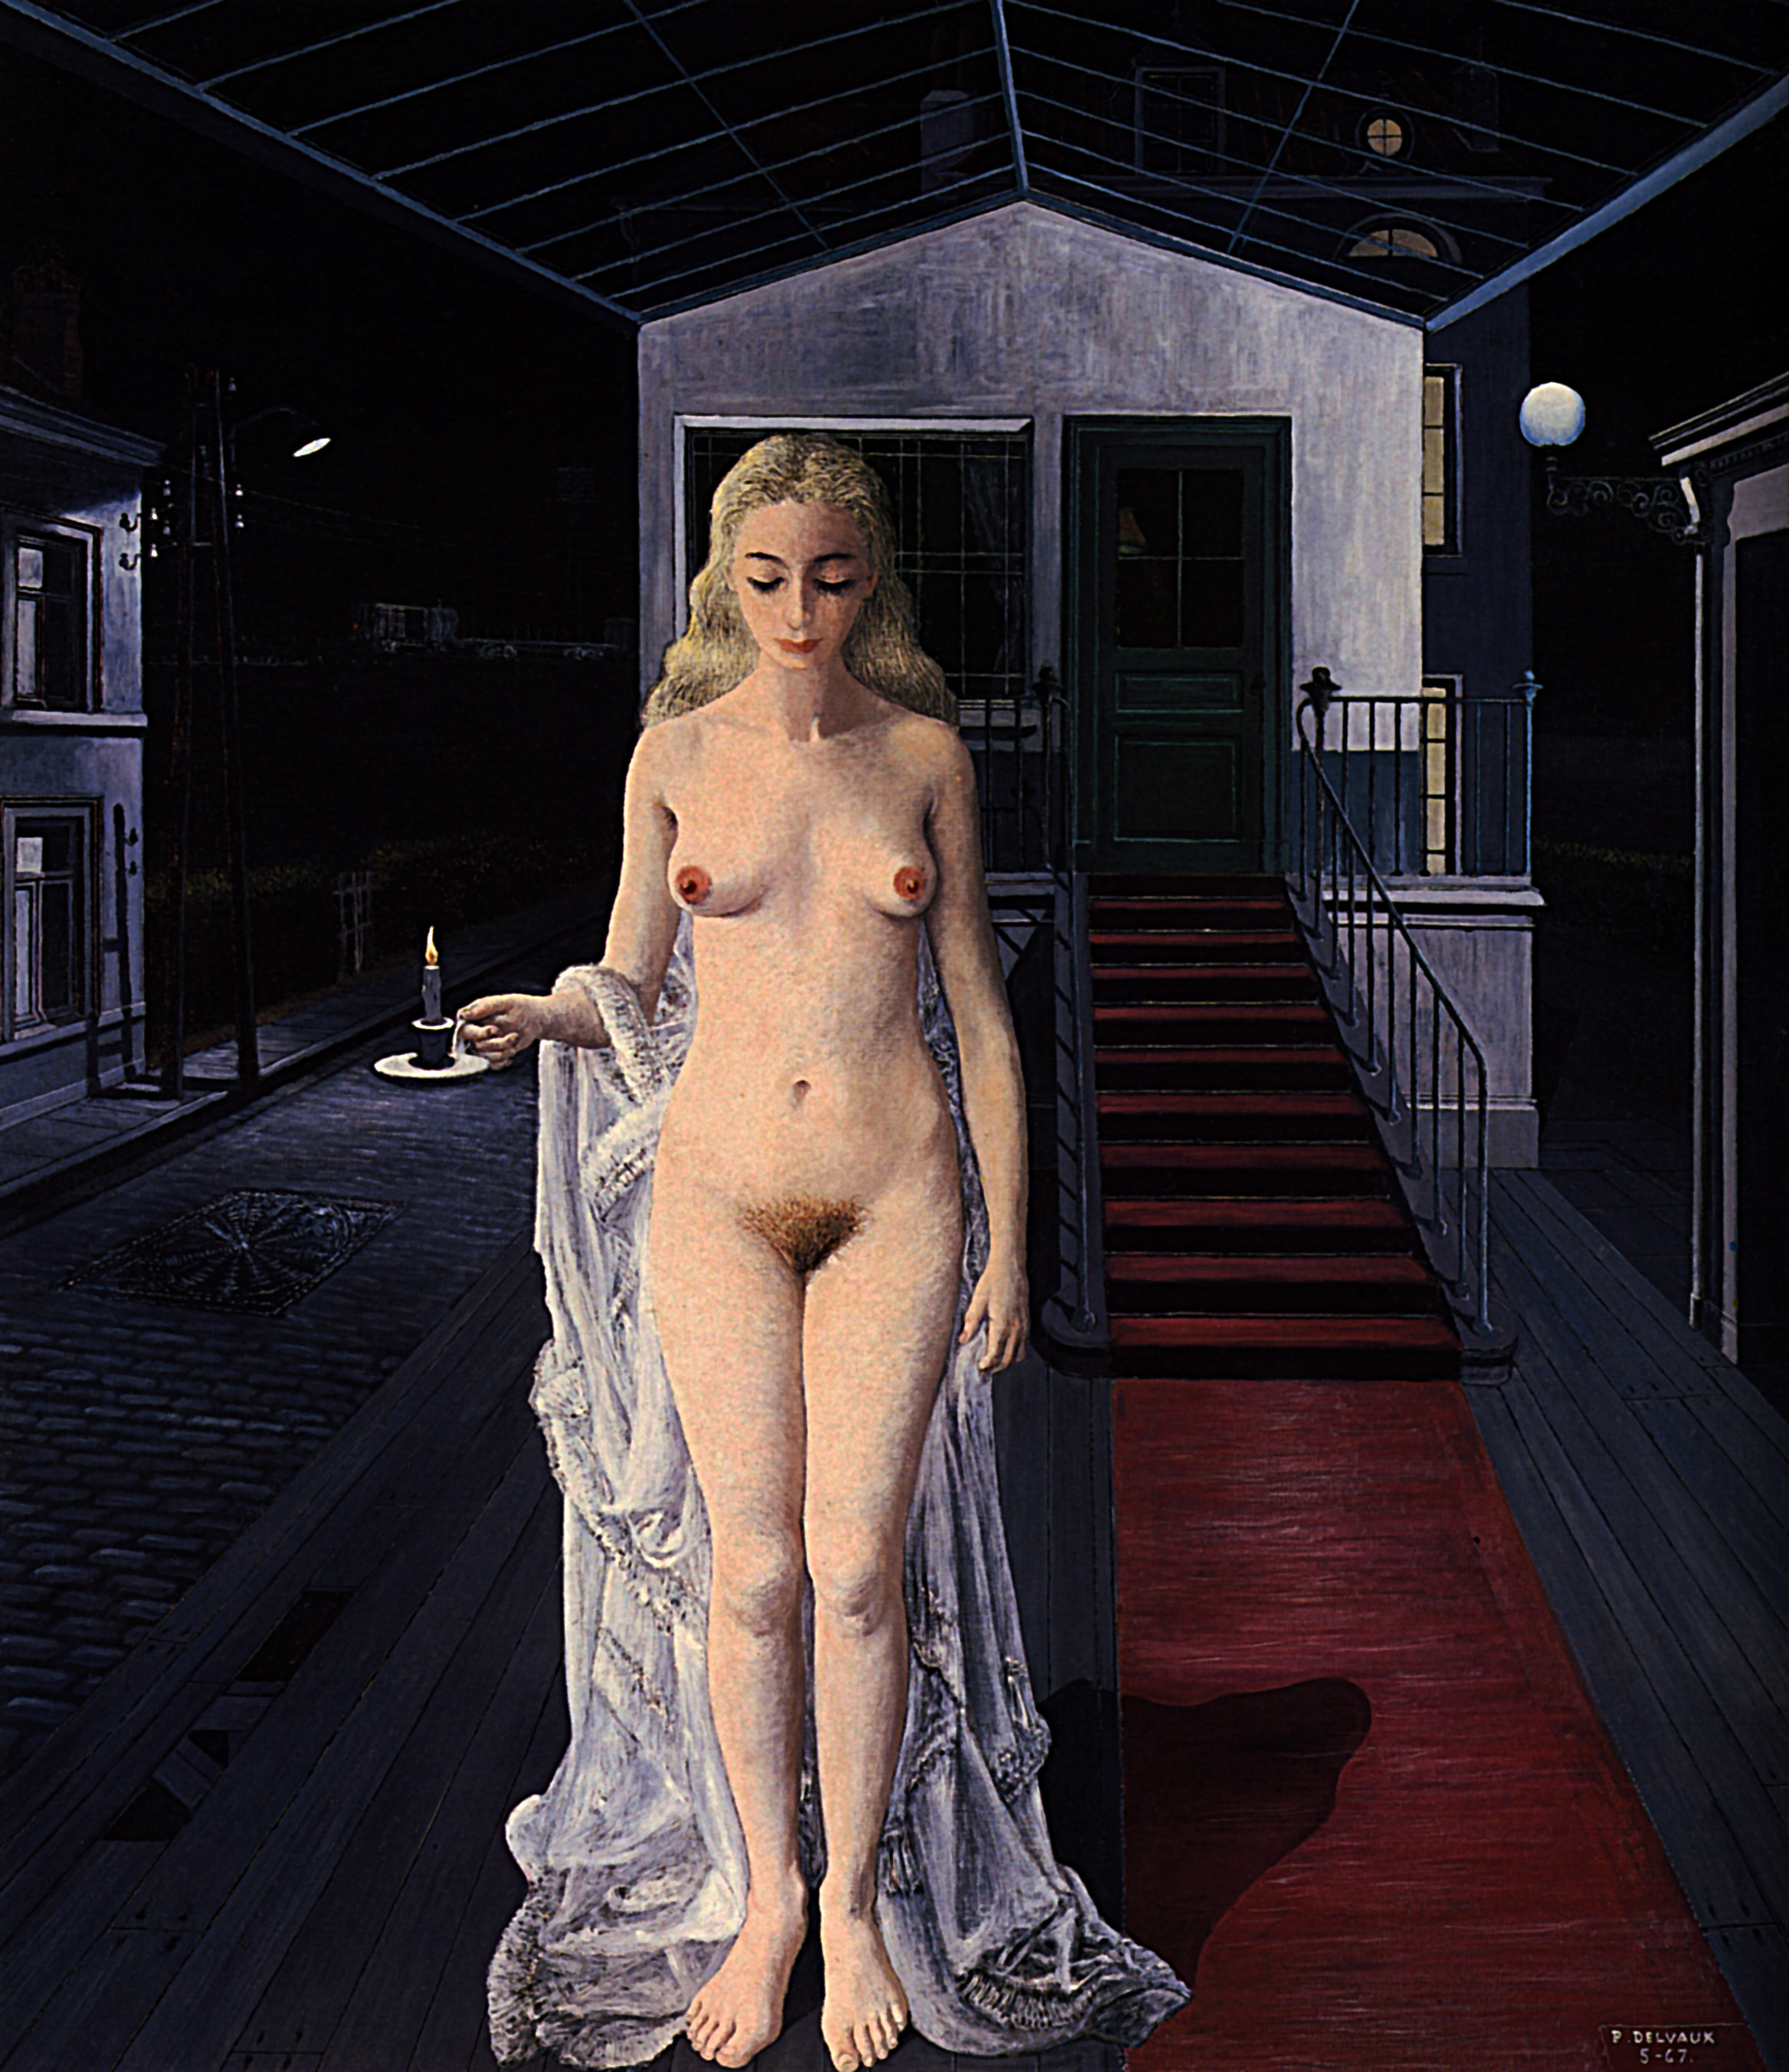 Paul Delvaux - Welcome to the fantastic world of art!